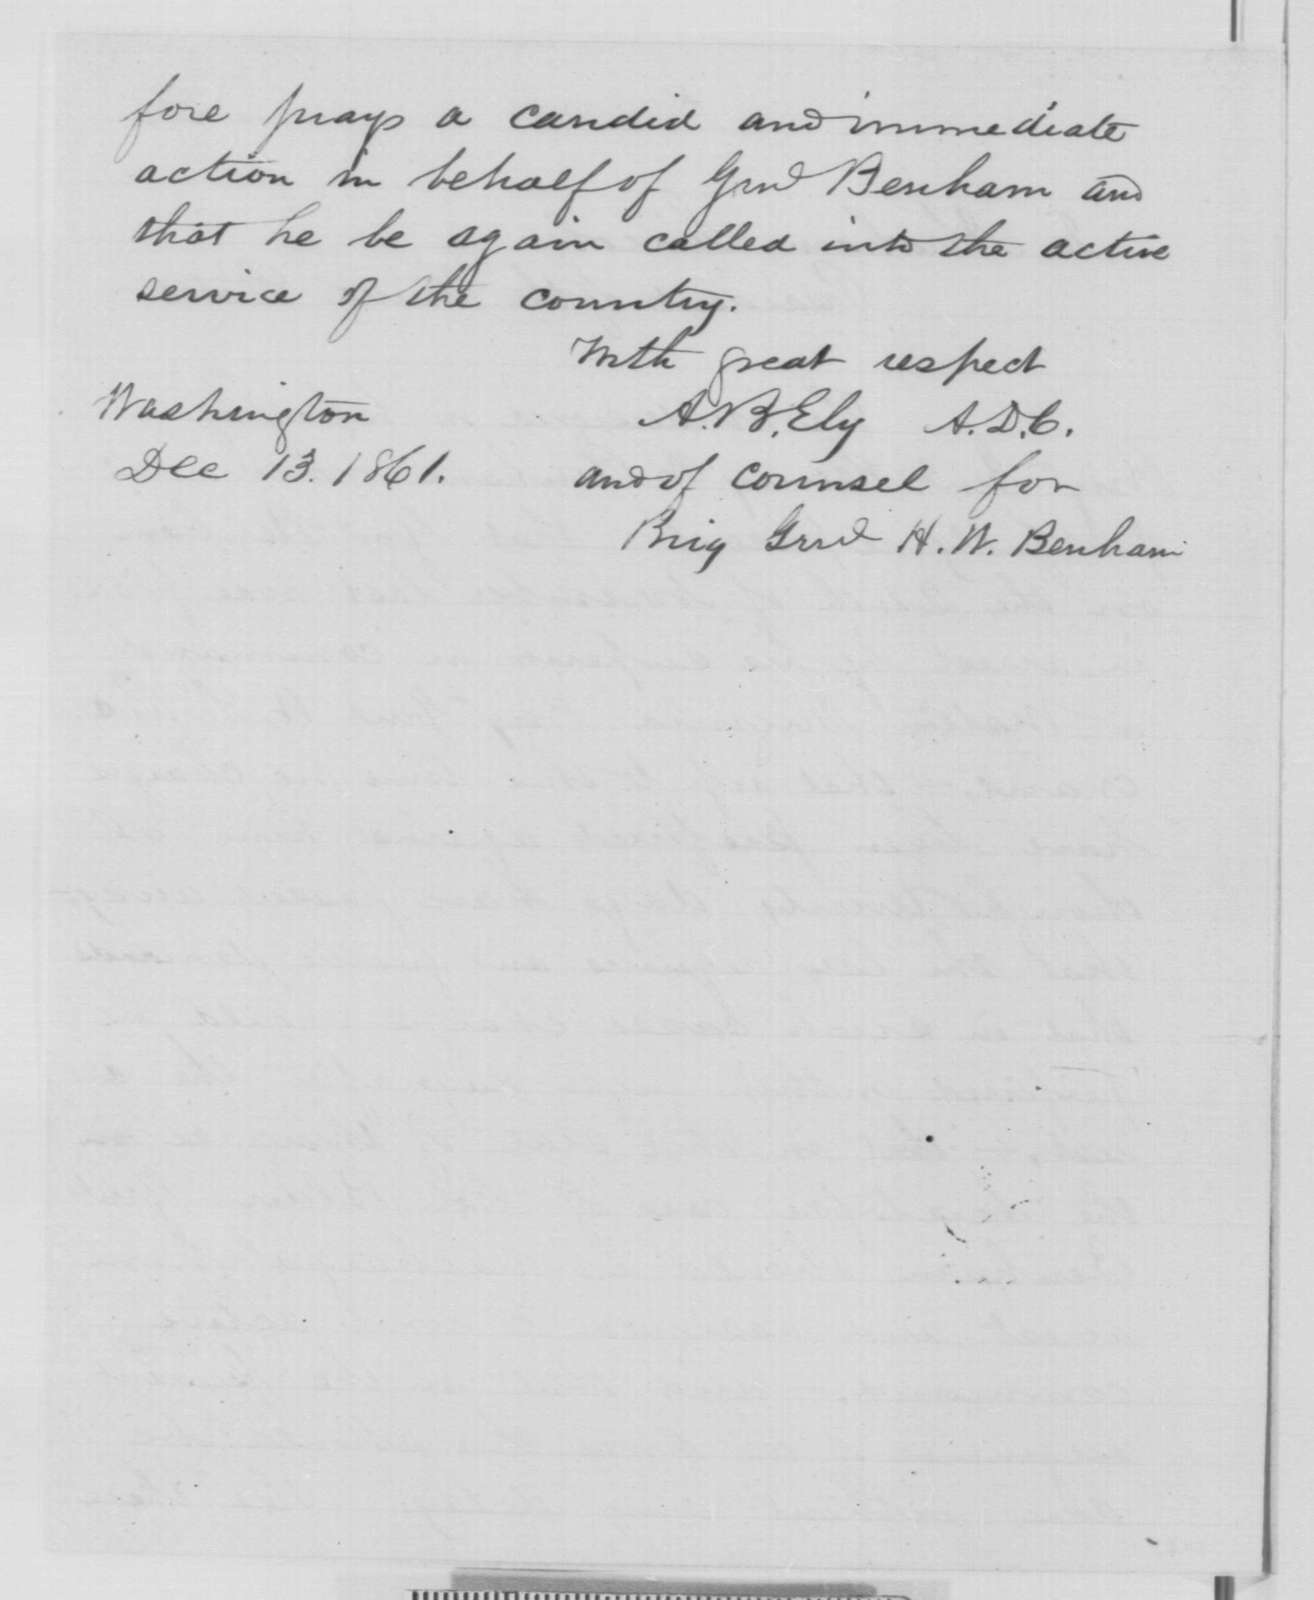 Alfred B. Ely to Abraham Lincoln, Friday, December 13, 1861  (Arrest of Gen. Benham; endorsed by Abraham Lincoln, Dec. 14, 1861; with response from J.L. Lee, Dec 19, 1861 and Gen. McClellan, Dec, 19, 1861)